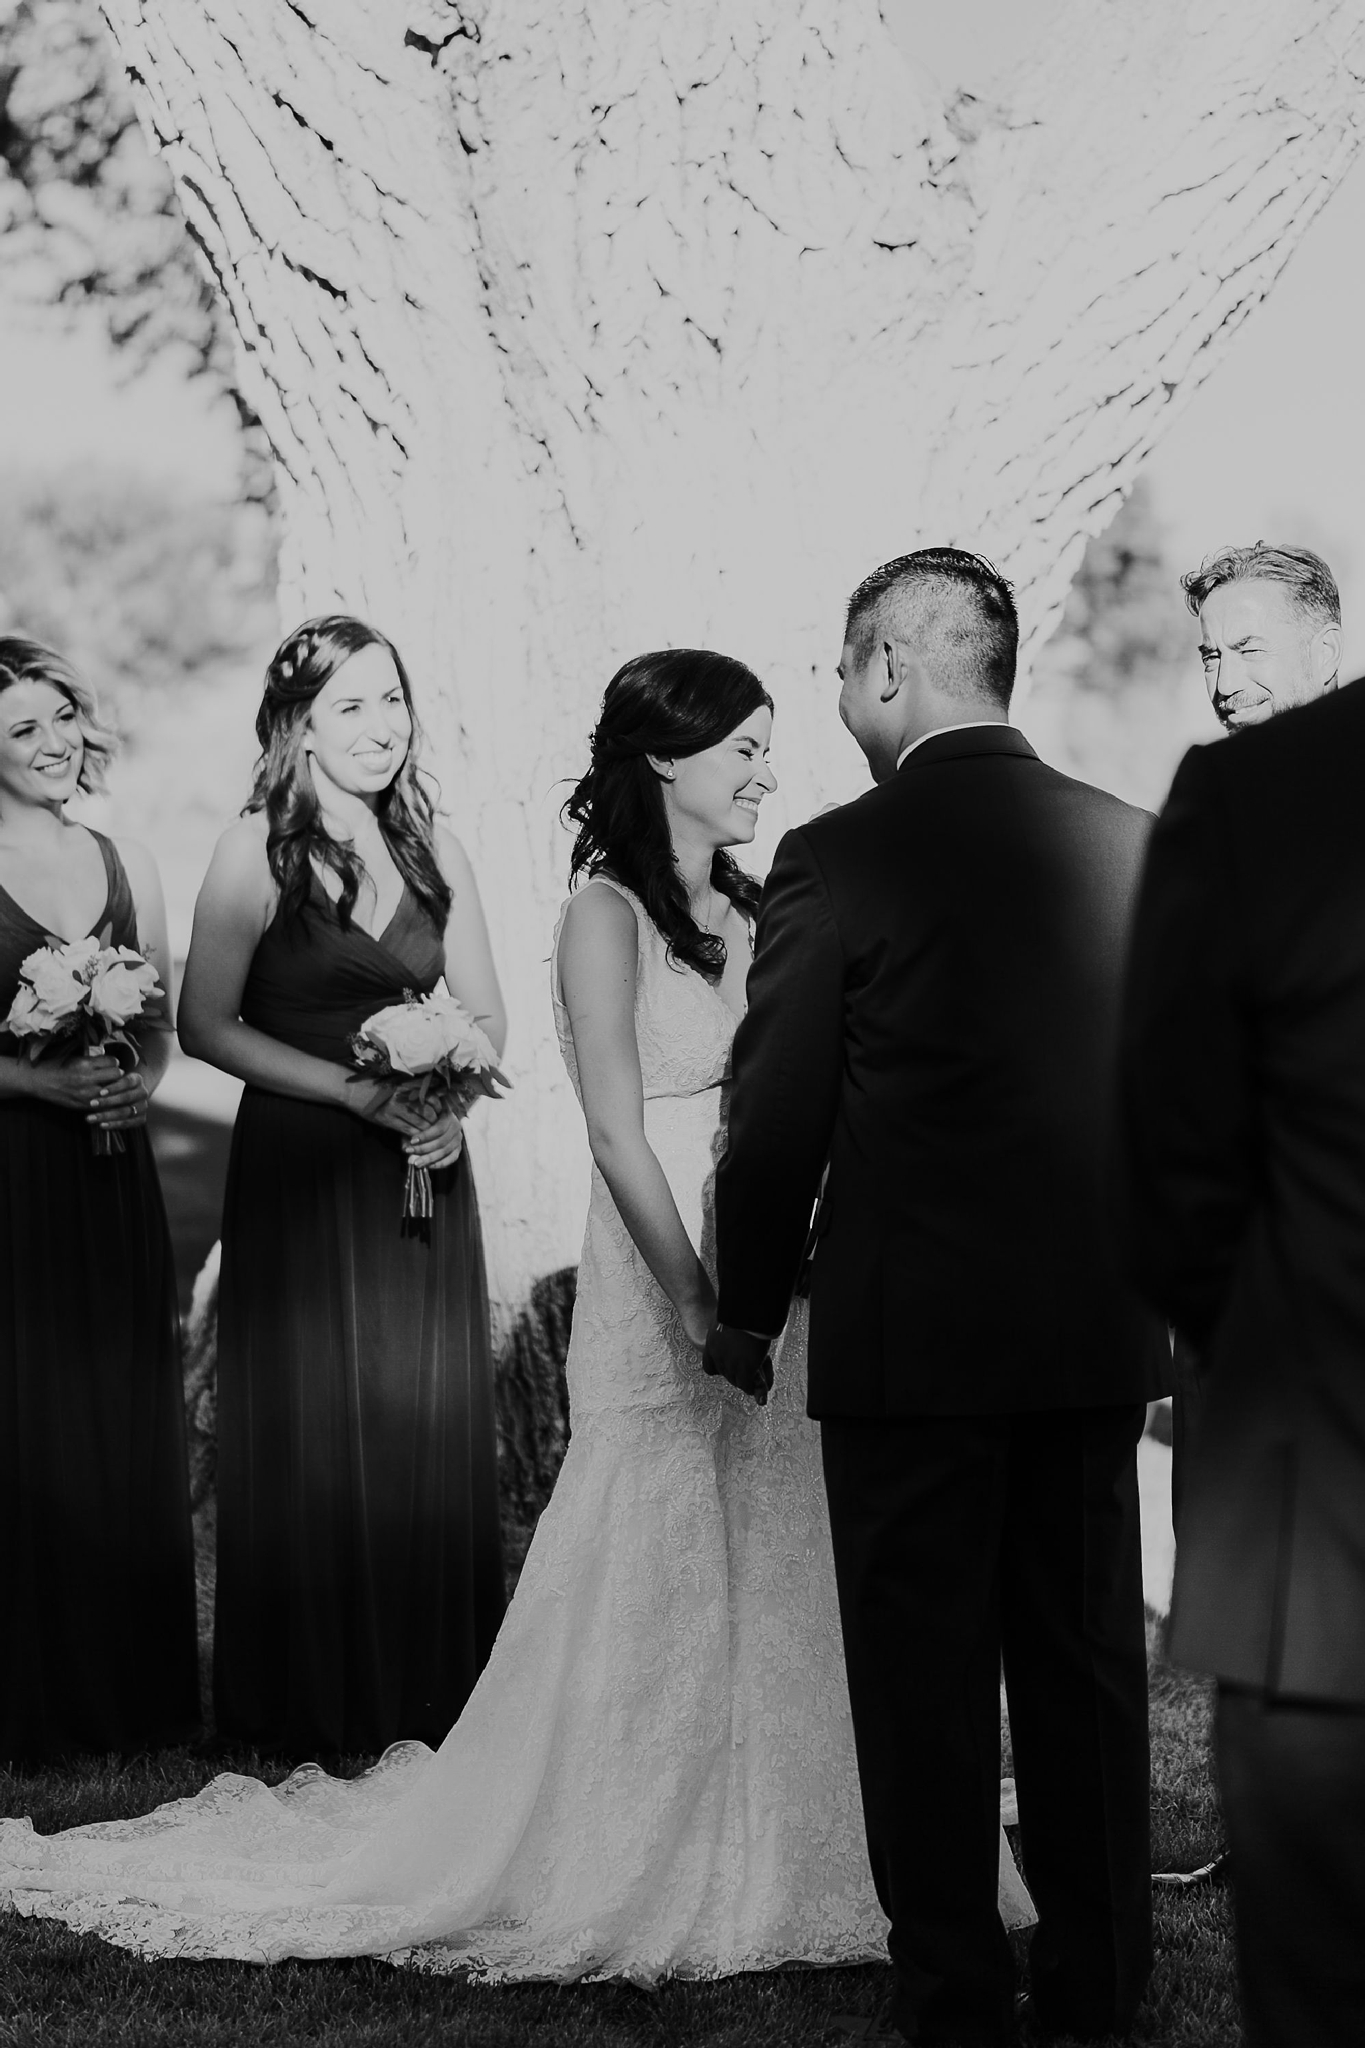 Alicia+lucia+photography+-+albuquerque+wedding+photographer+-+santa+fe+wedding+photography+-+new+mexico+wedding+photographer+-+new+mexico+wedding+-+wedding+vows+-+writing+your+own+vows+-+wedding+inspo_0010.jpg